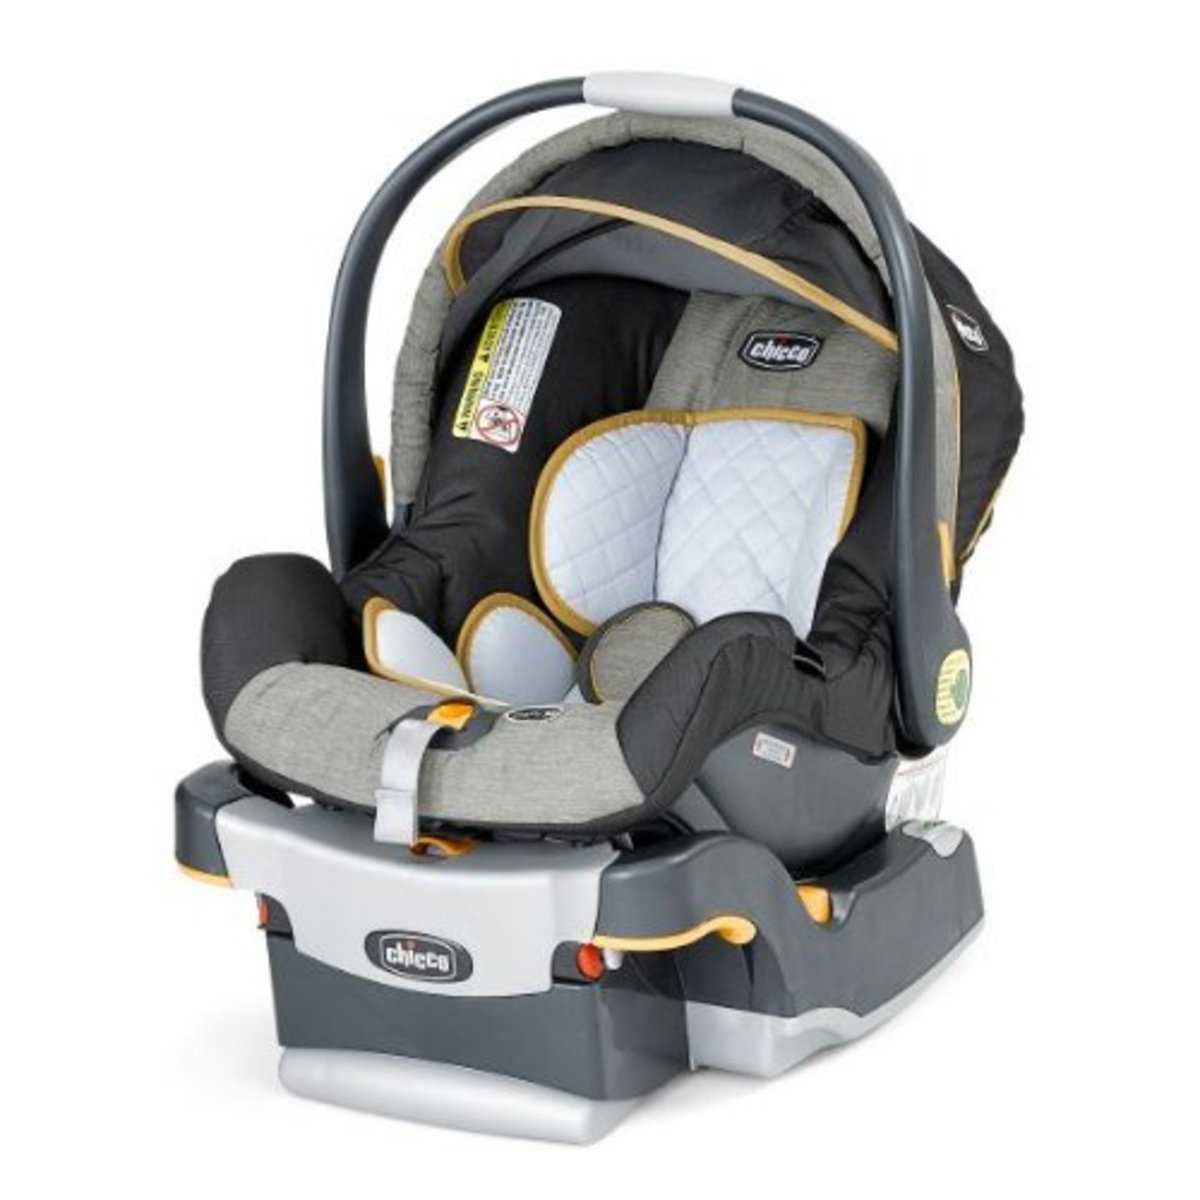 The Chicco Keyfit 30 car seat.